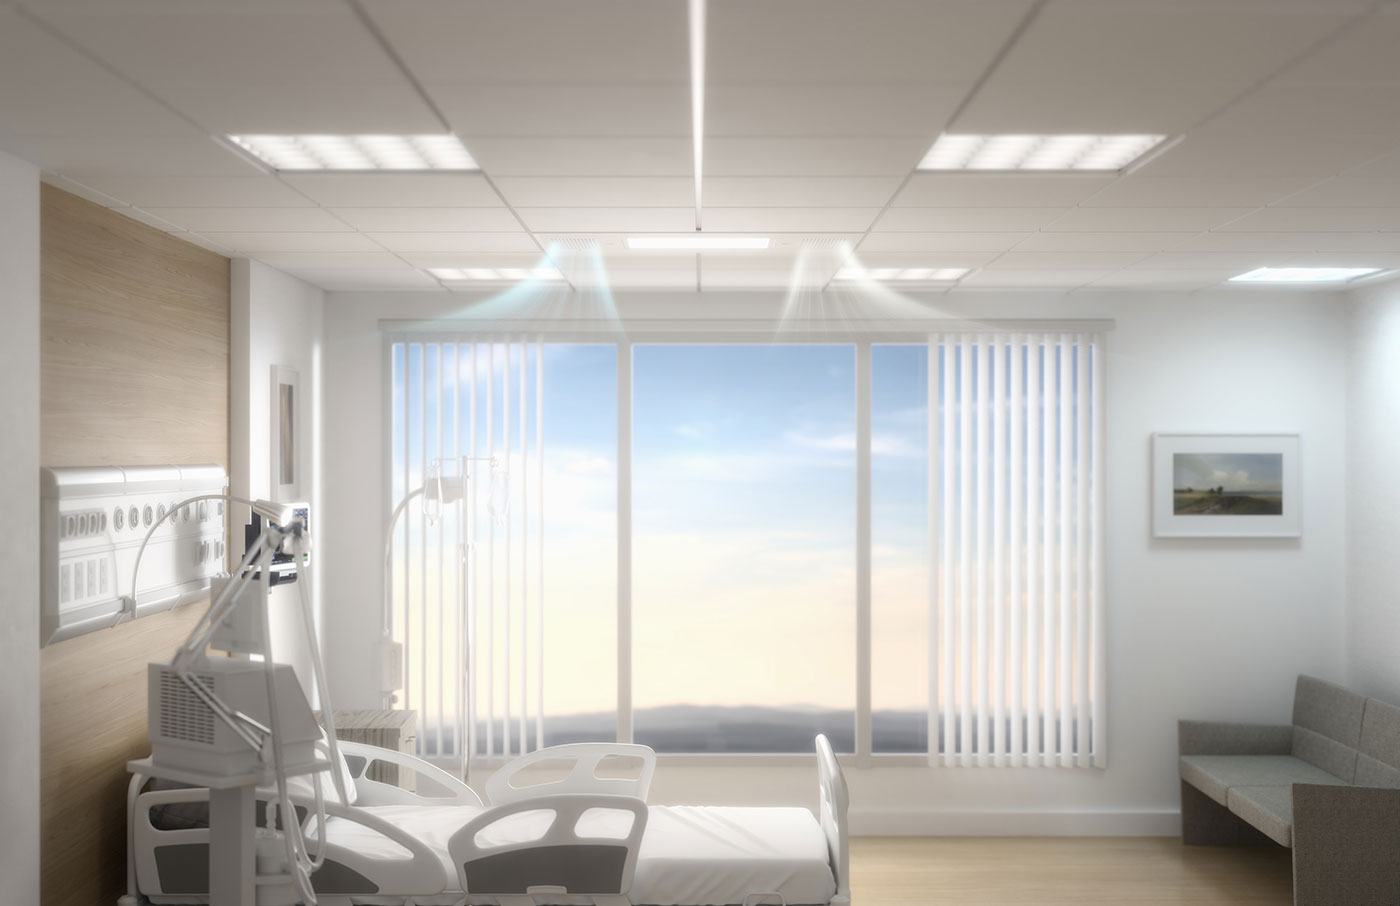 hospital room with clean air filtration system